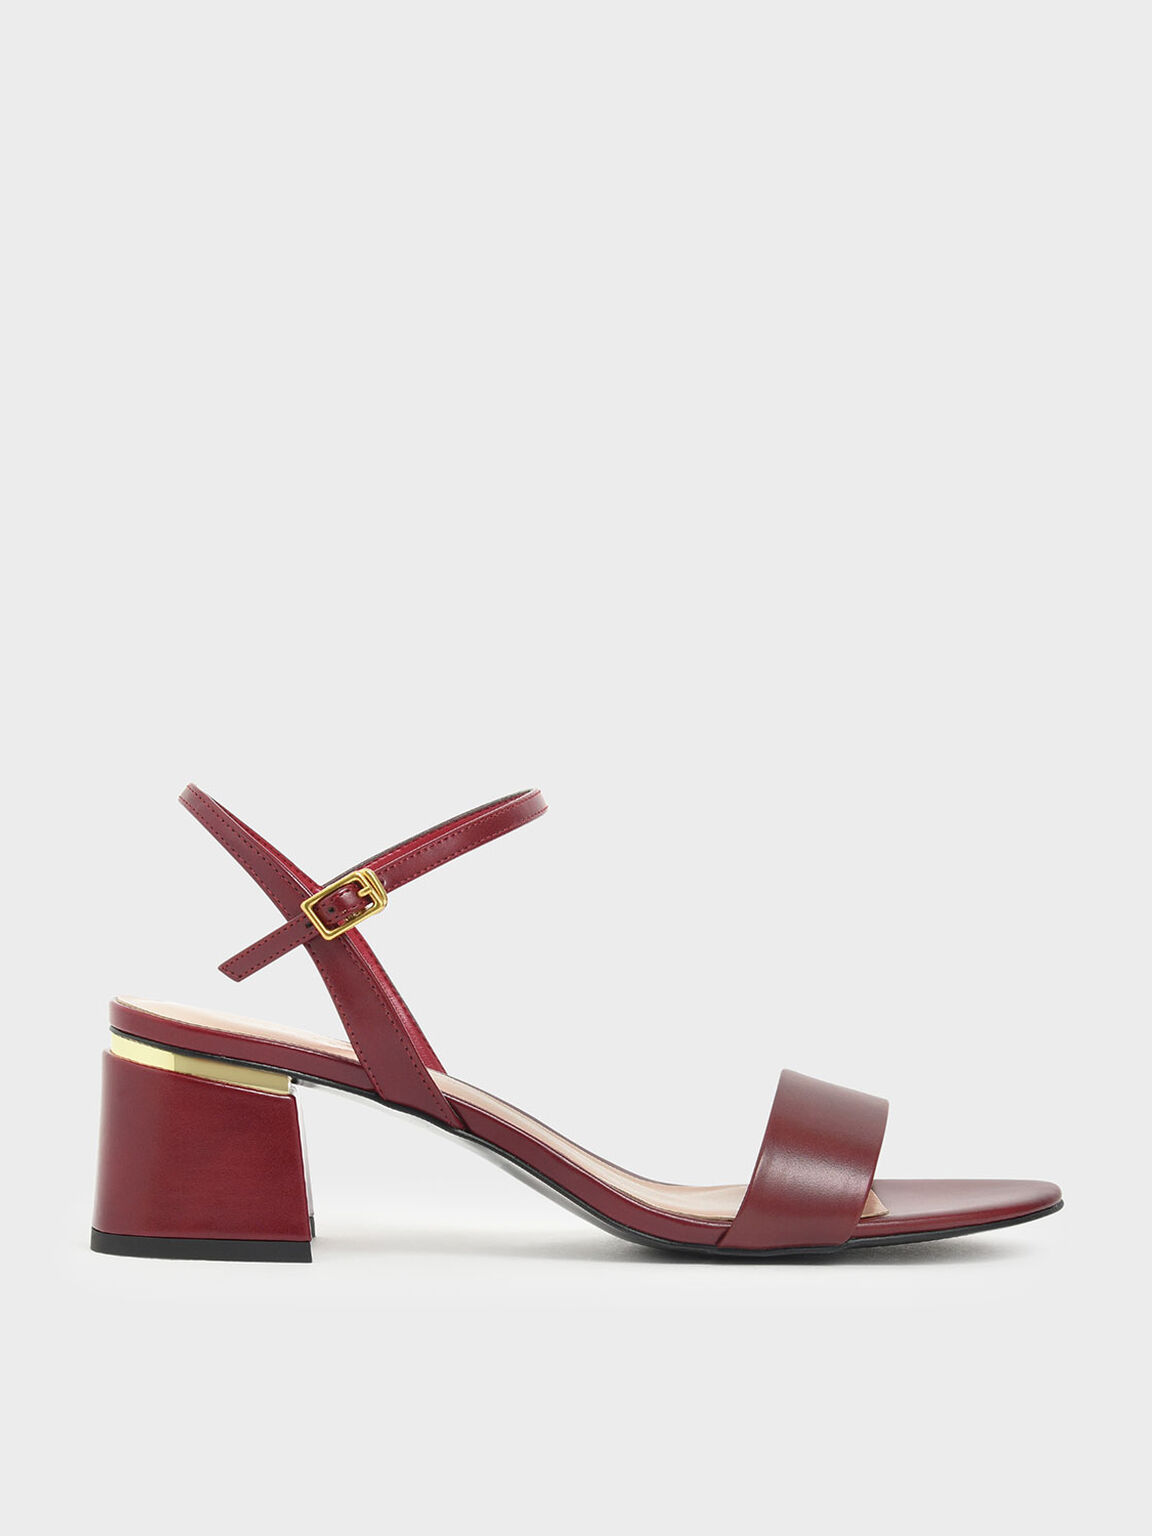 Open Toe Ankle Strap Block Heel Sandals, Red, hi-res